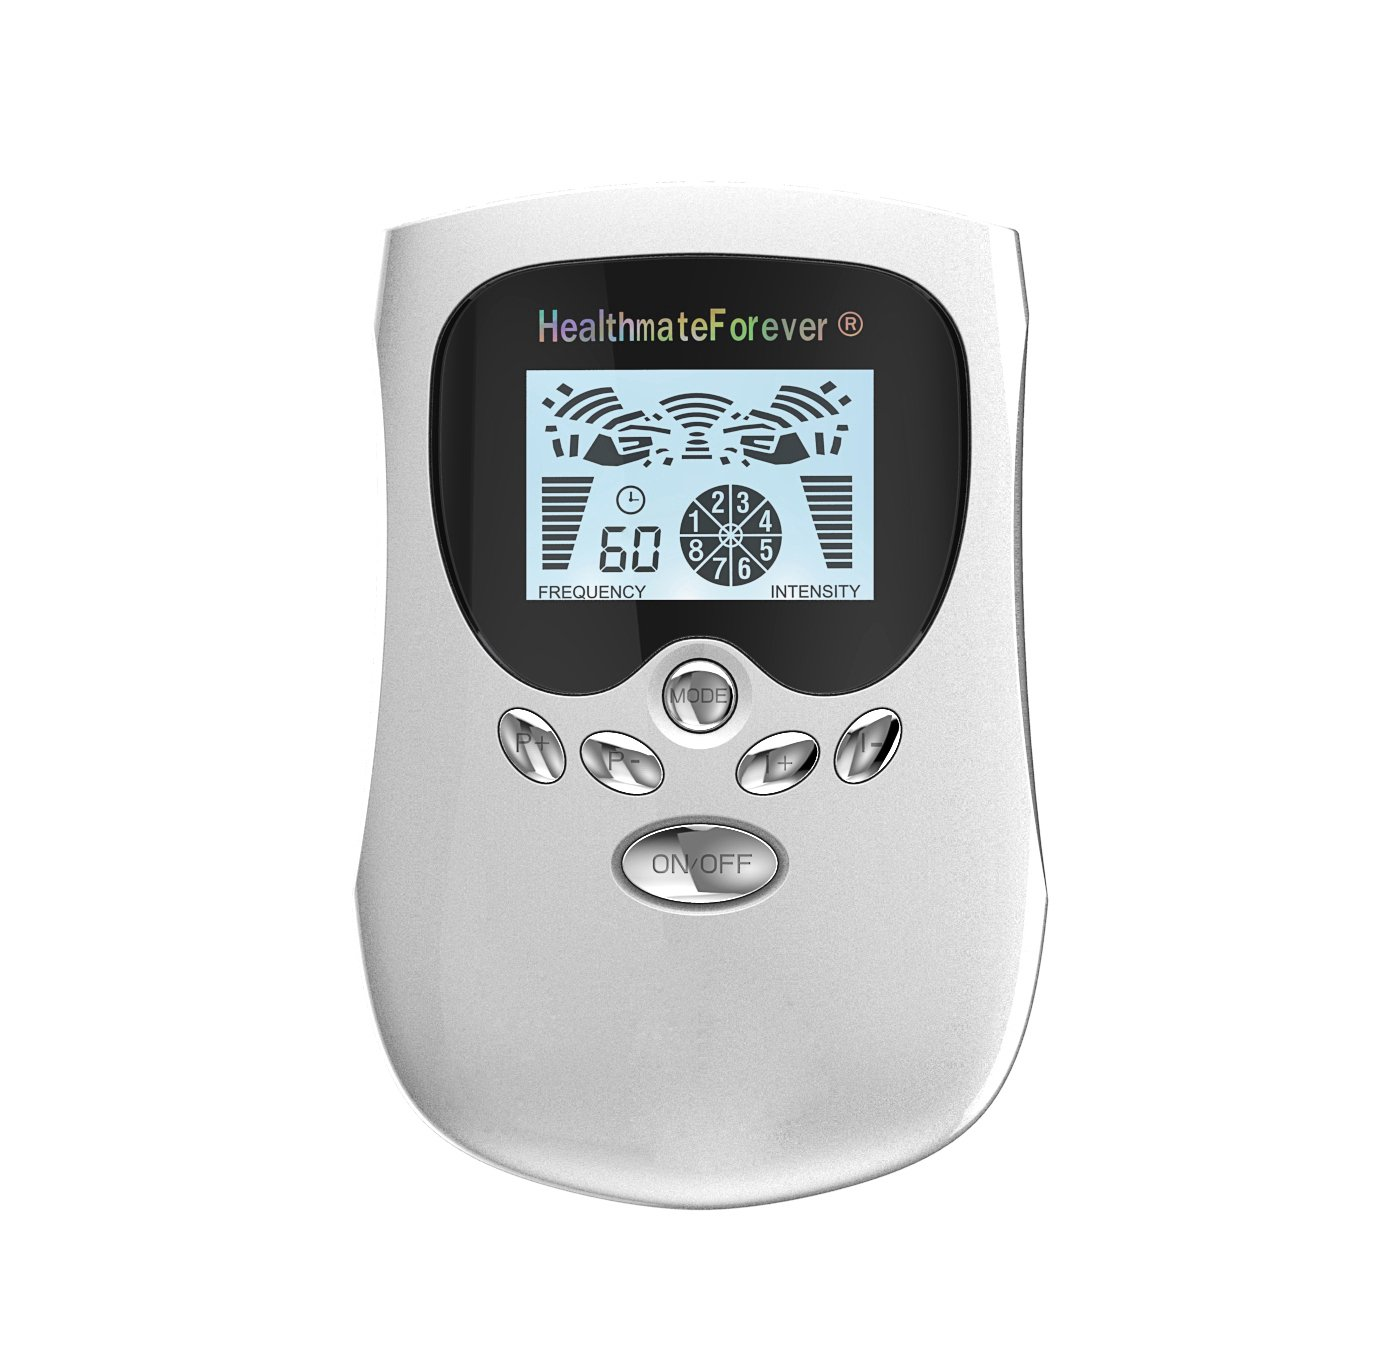 PM8 HealthmateForever TENS Unit Electrical Muscle Stimulator White